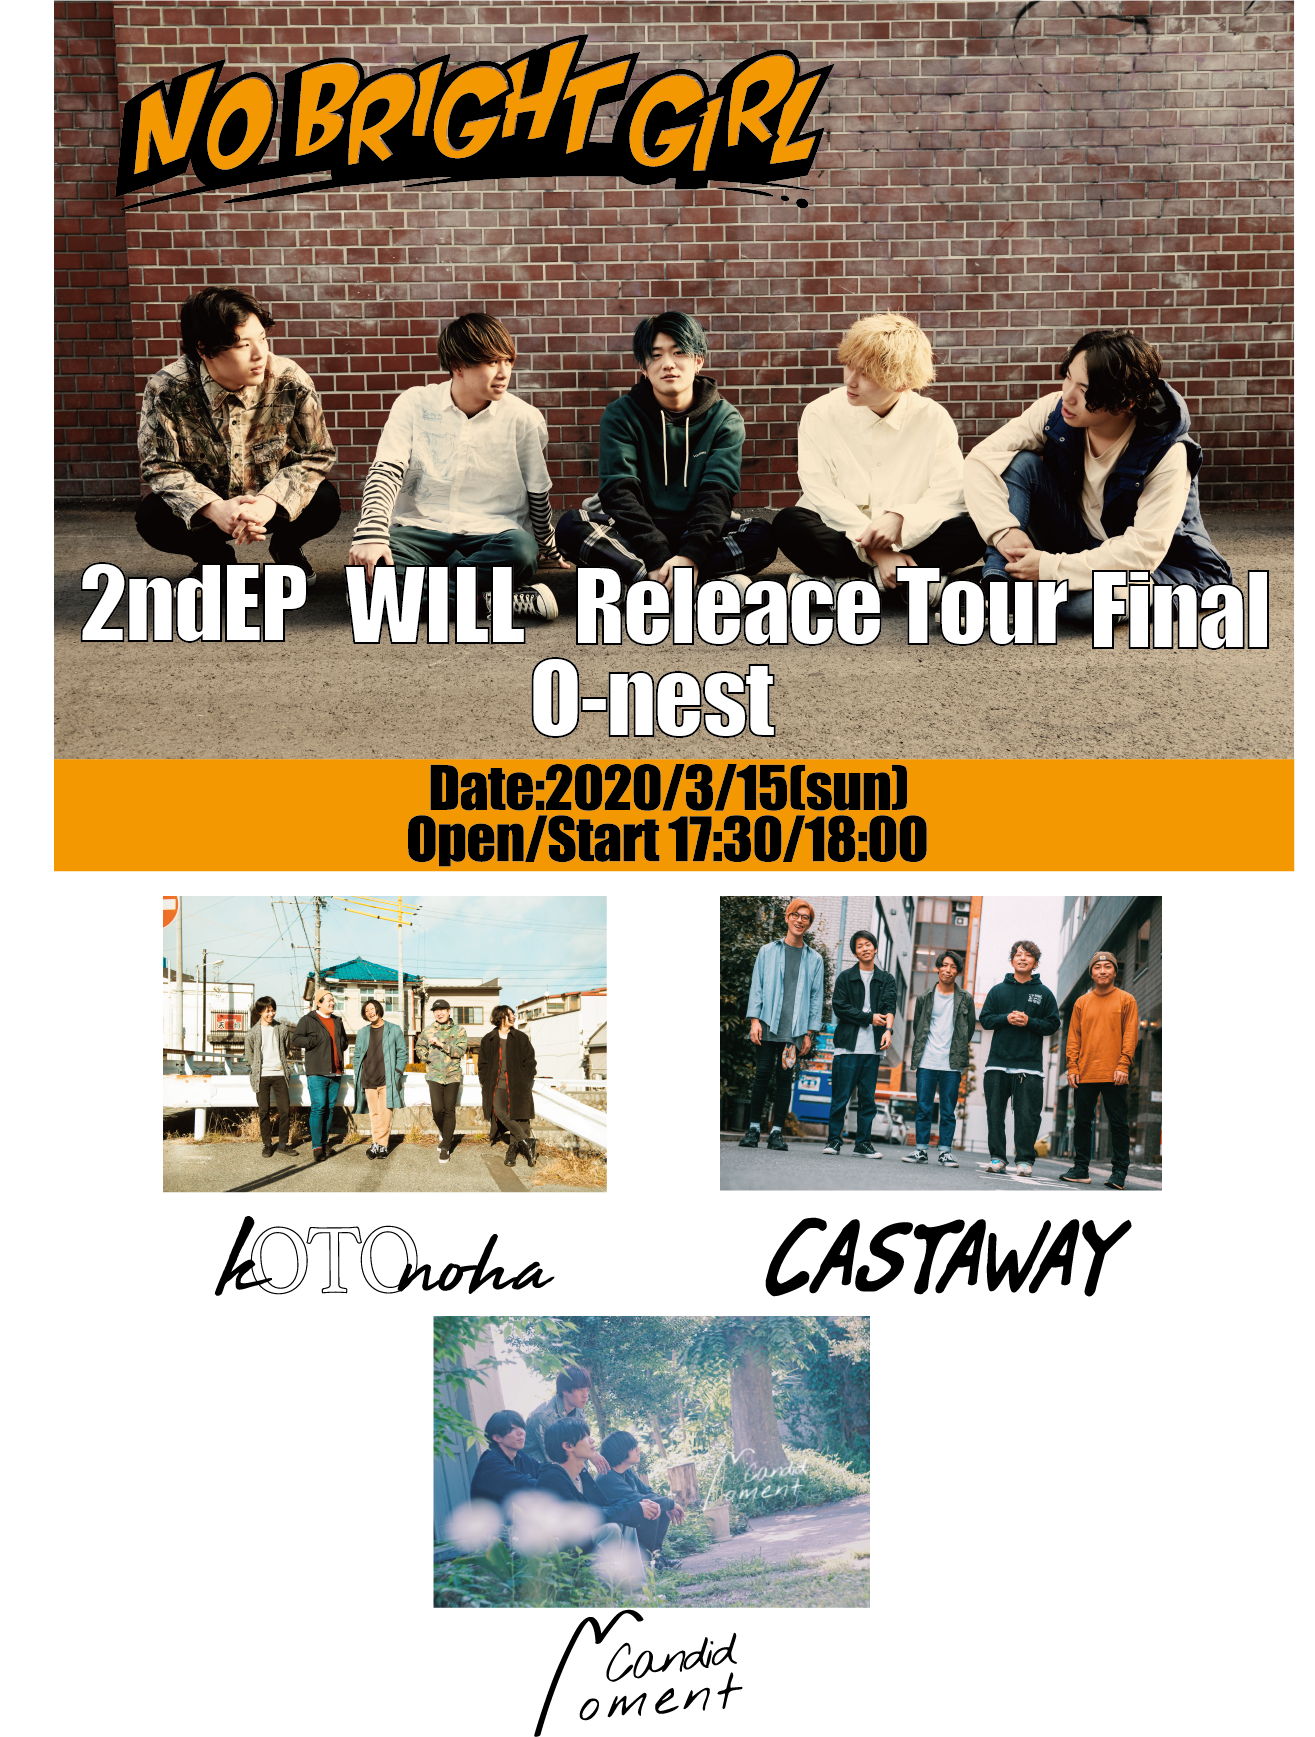 NO BRIGHT GIRL 2nd EP WILL Release Tour Final